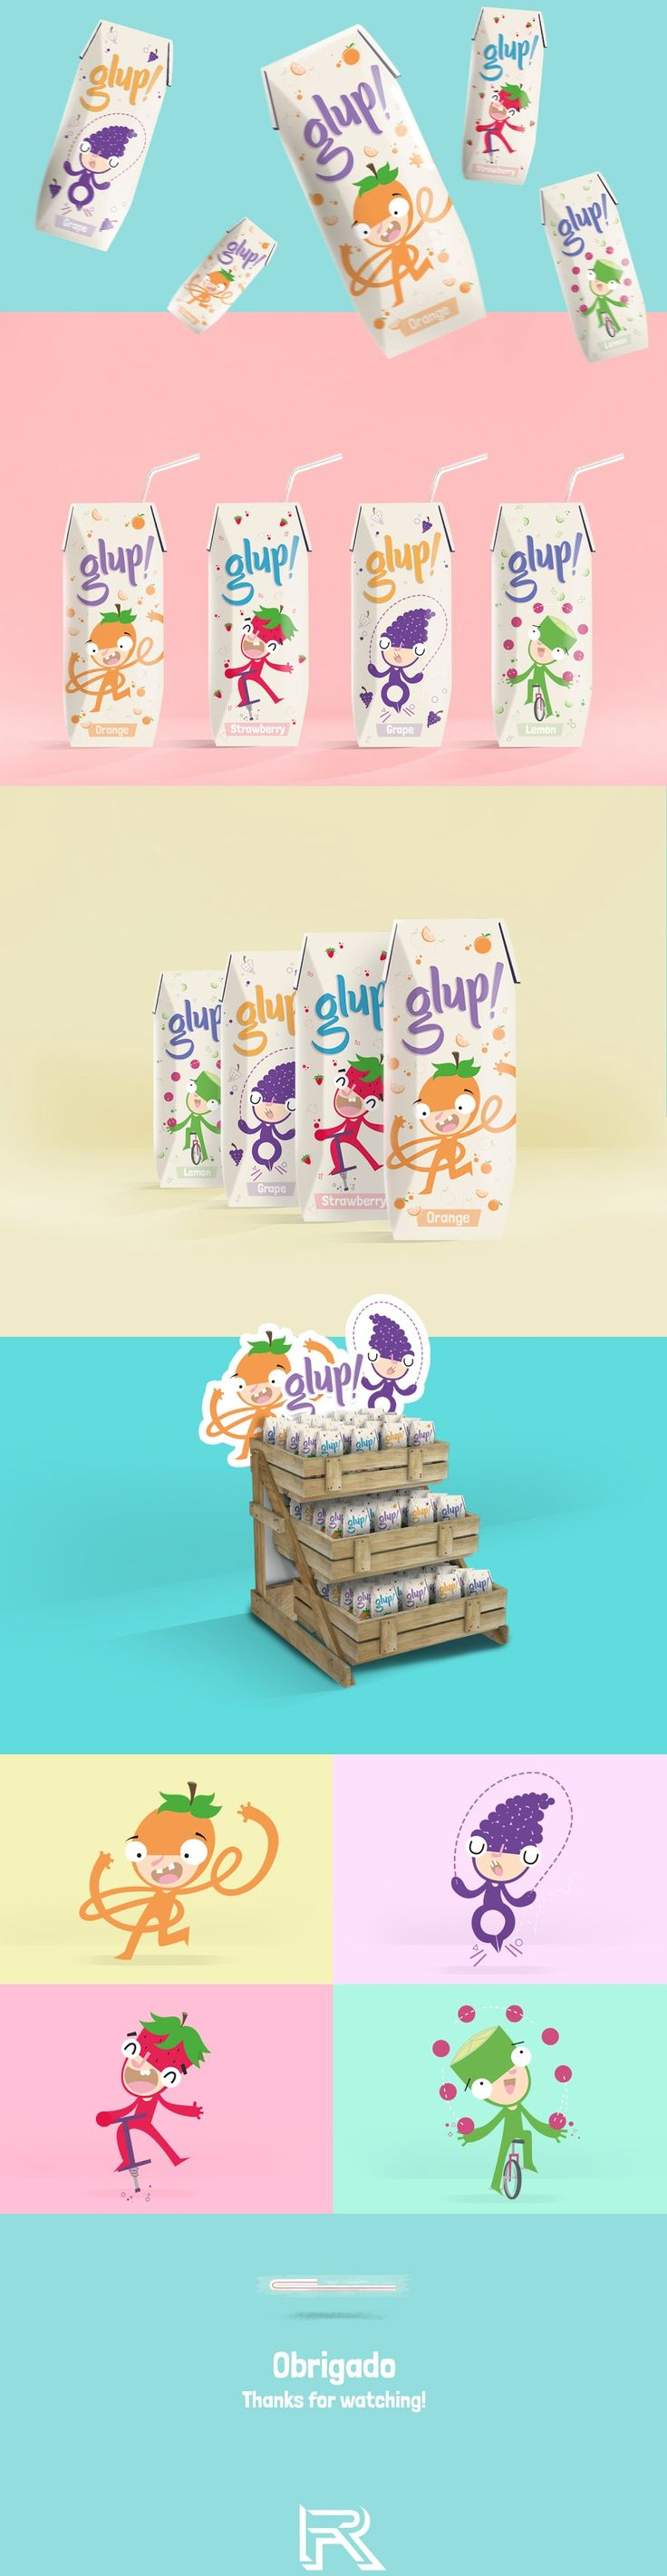 Glup! (Student Project) on Packaging of the World - Creative Package Design Gallery